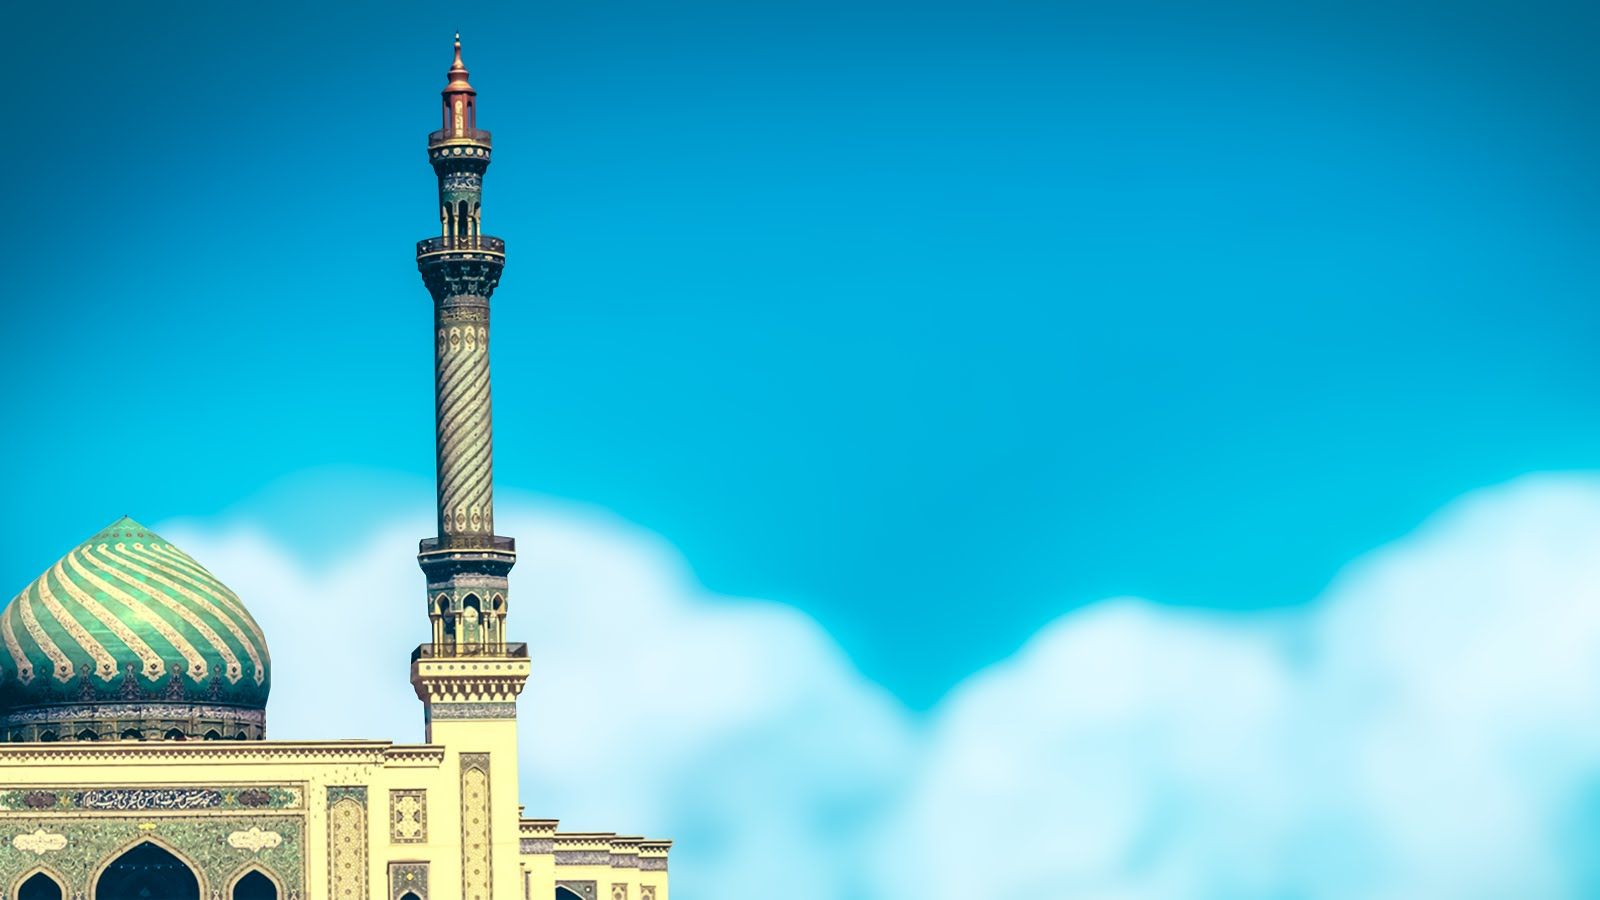 Download 470 Wallpaper Hd Masjid HD Terbaru